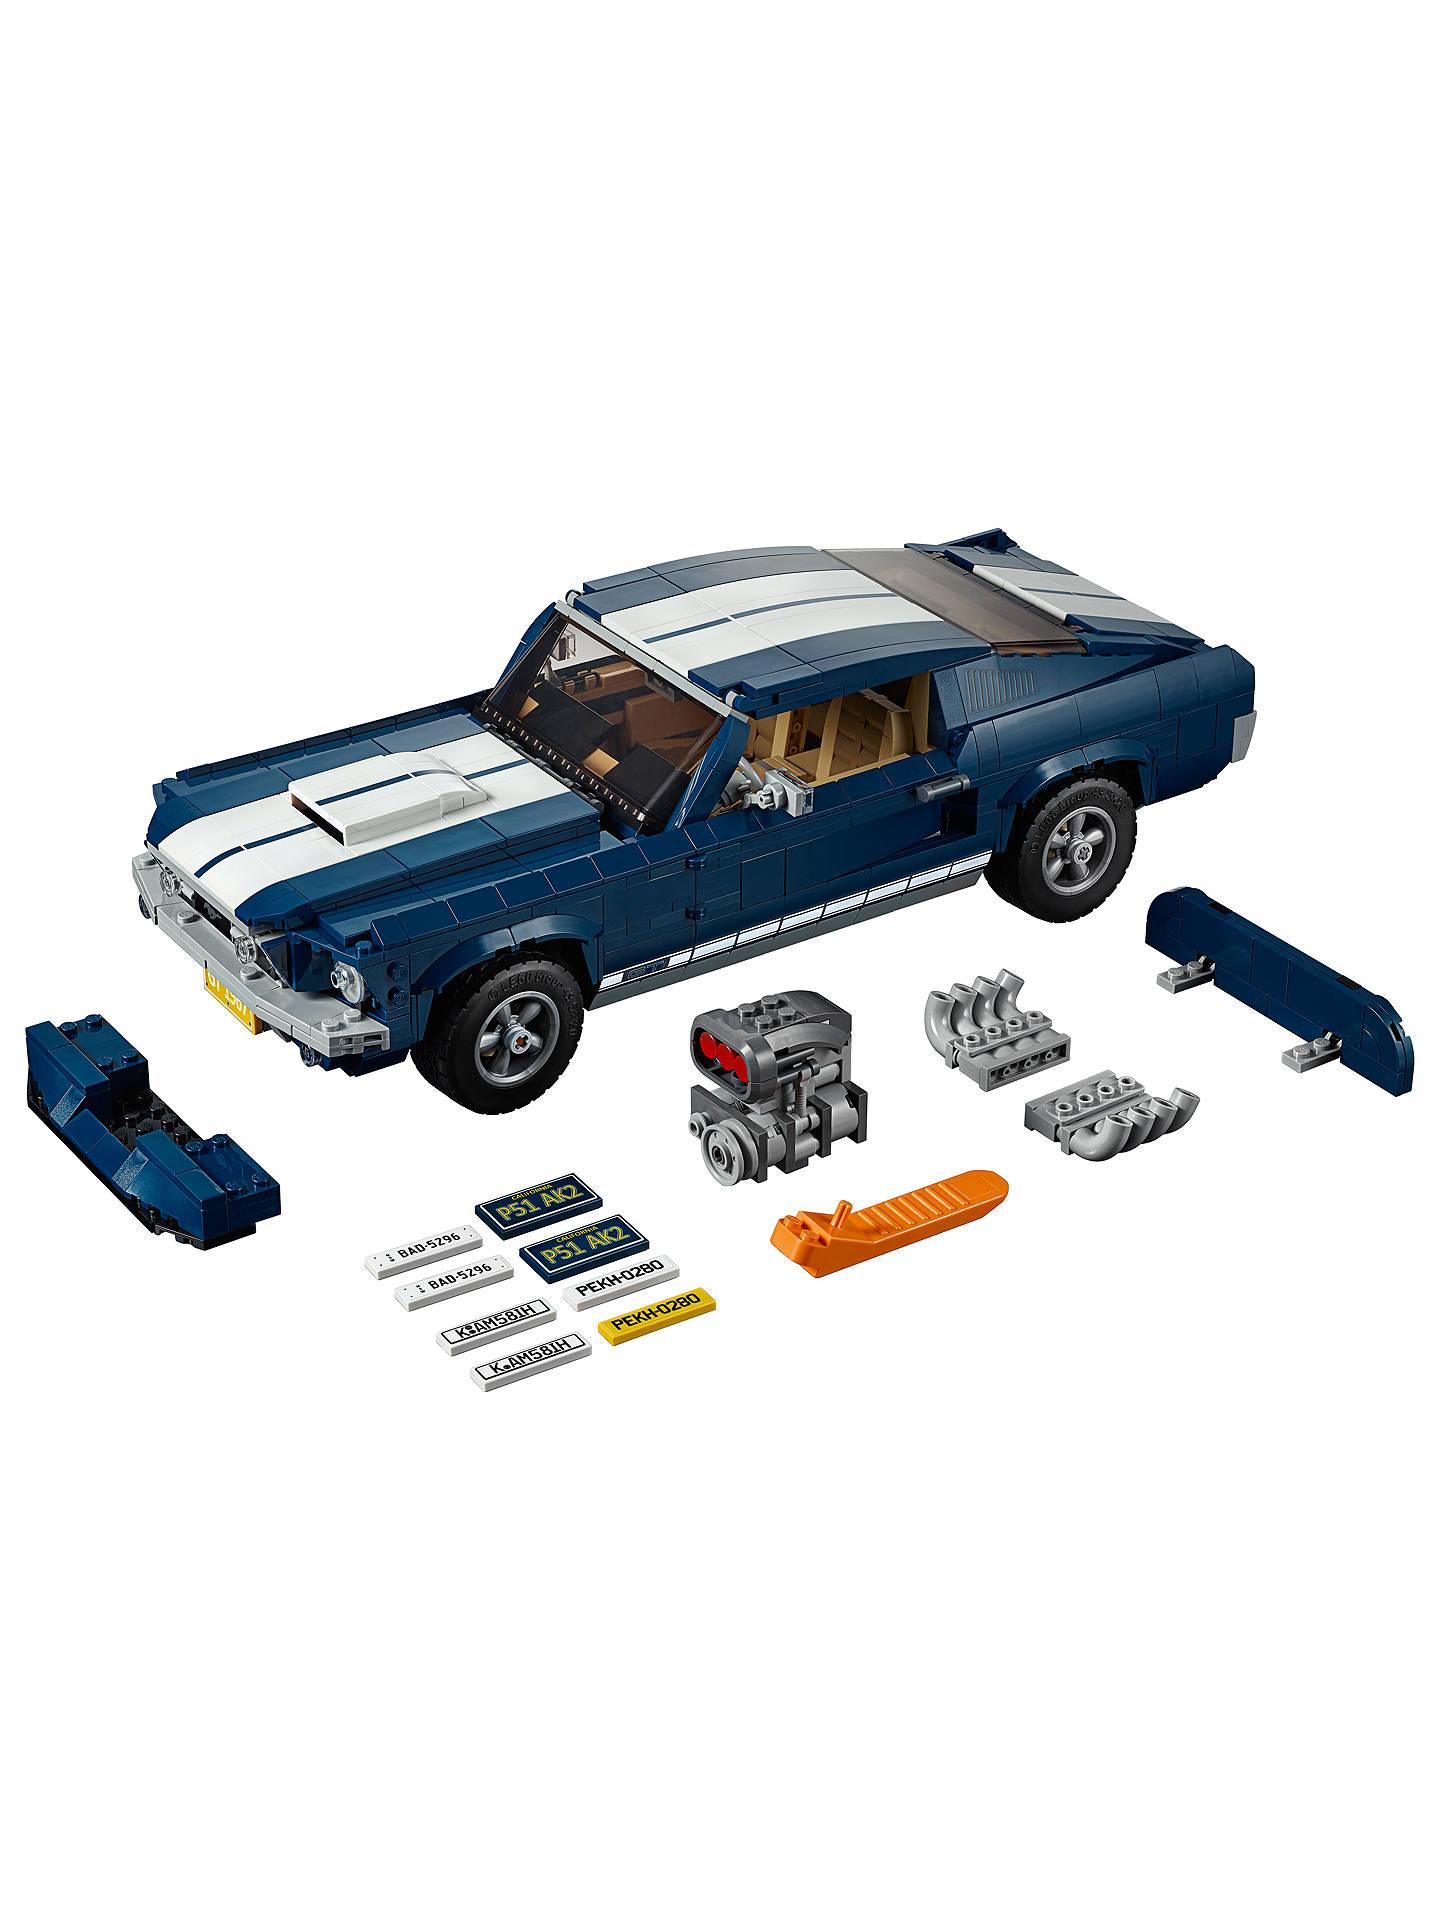 reputable site 02479 dfe2b LEGO Creator 10265 Expert Ford Mustang Collector's Car